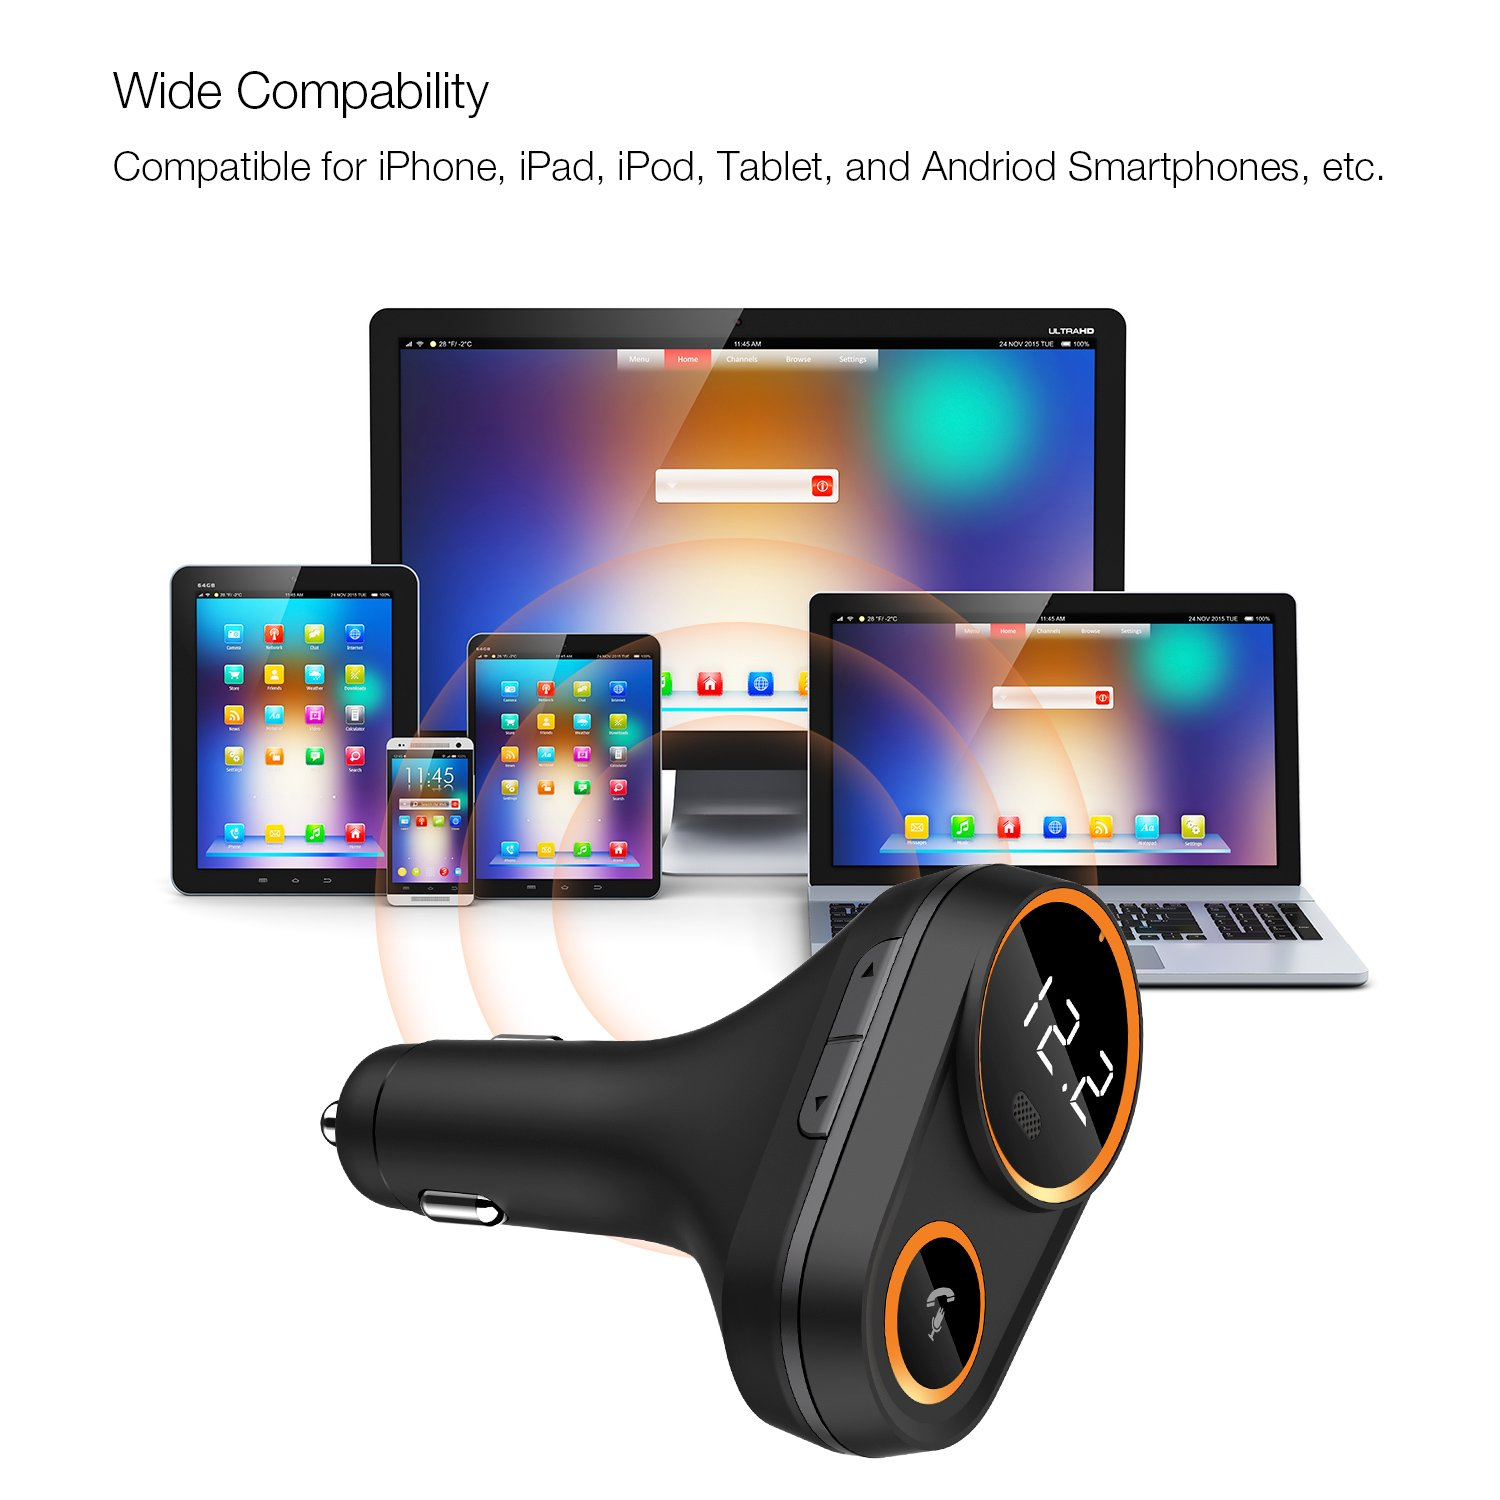 FM Transmitter, Frienda Wireless In-Car FM Radio Adapter 5 V/4.8 A Dual USB Ports Car Charger for iPhone iPad Samsung Android Phones, Hands-free Calling, MP3 Player, Support for Bluetooth by Frienda (Image #6)